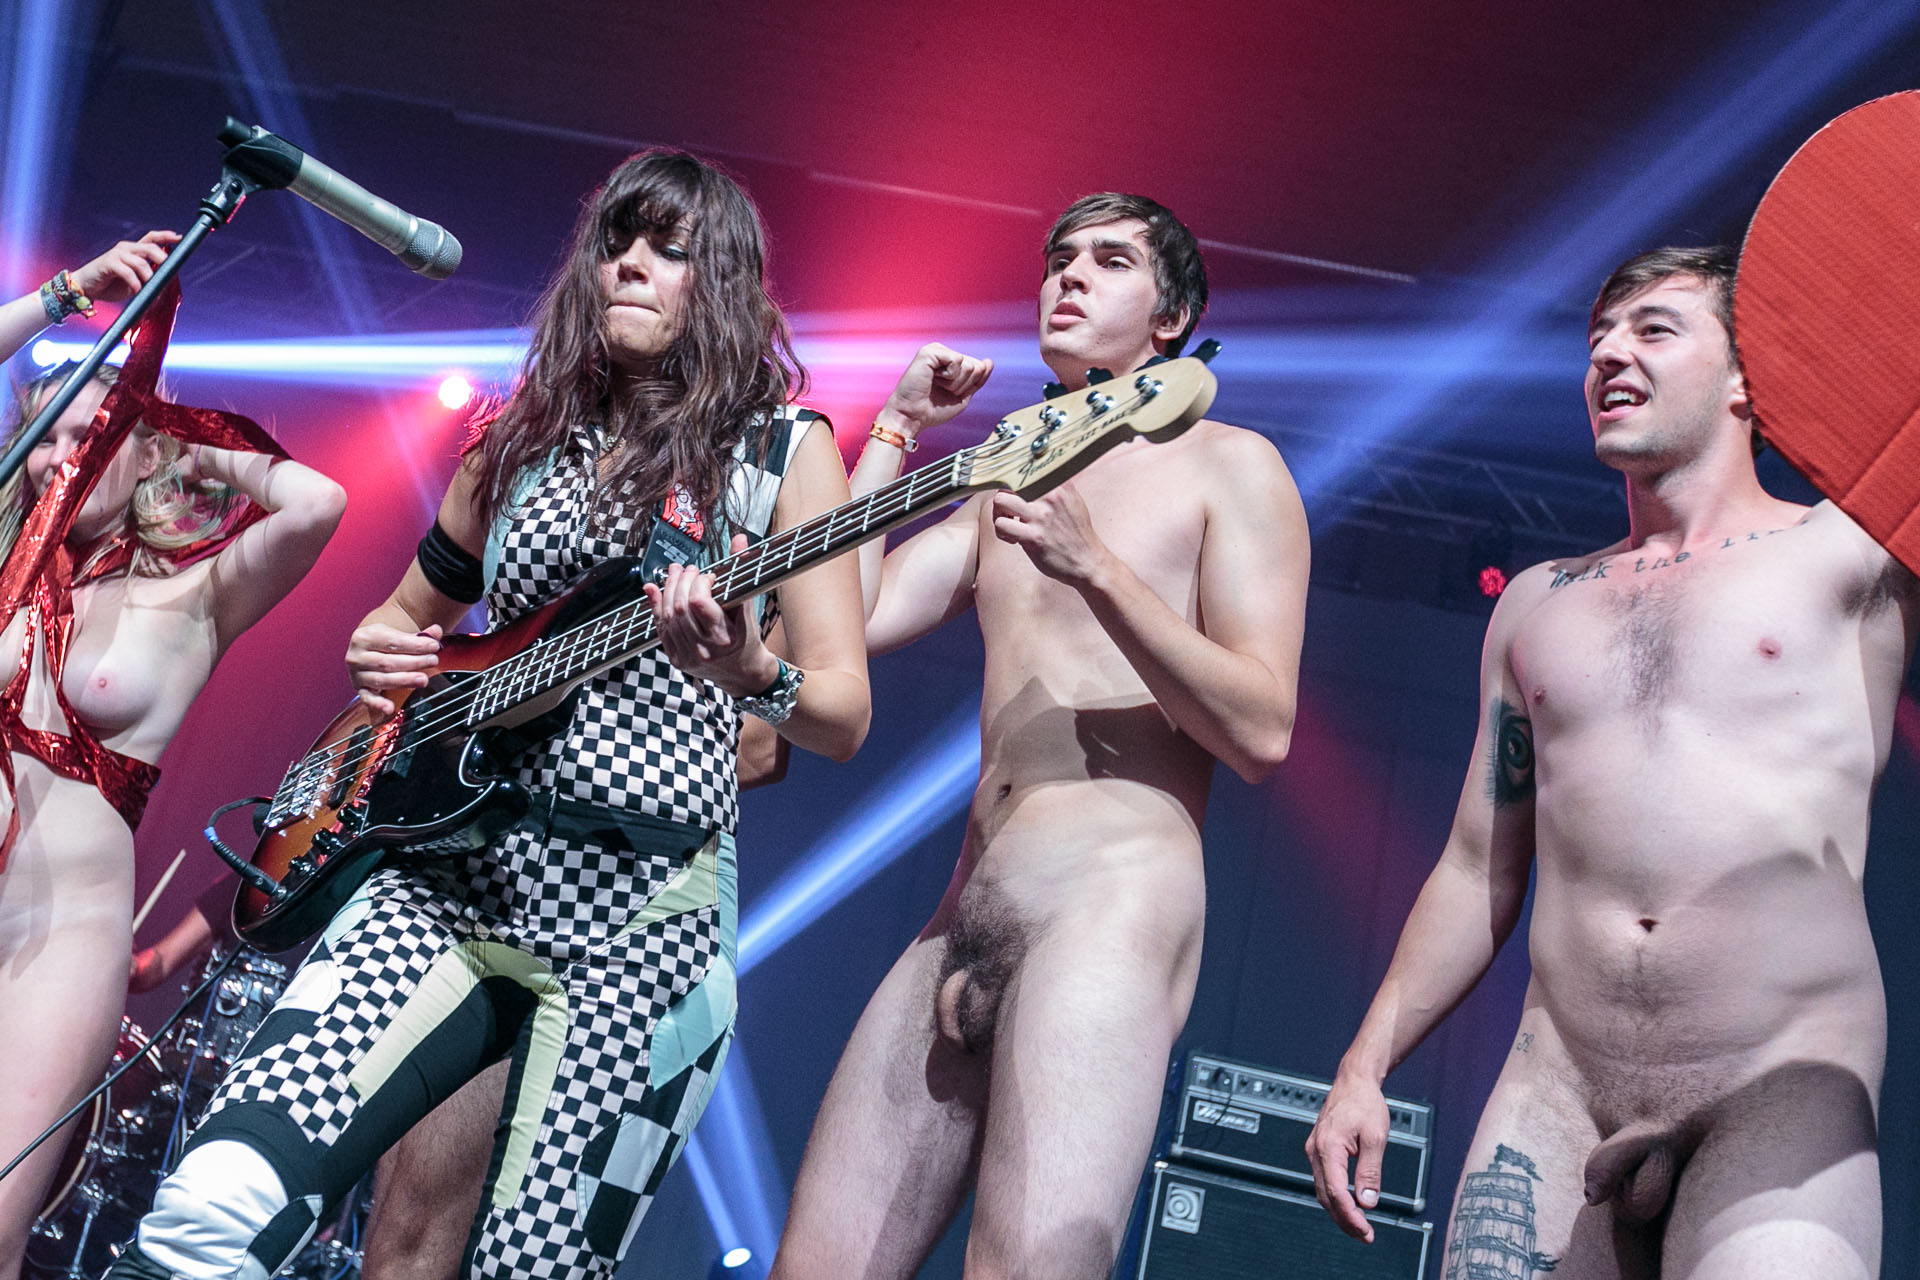 naked-music-band-on-stage-no-registration-free-porn-video